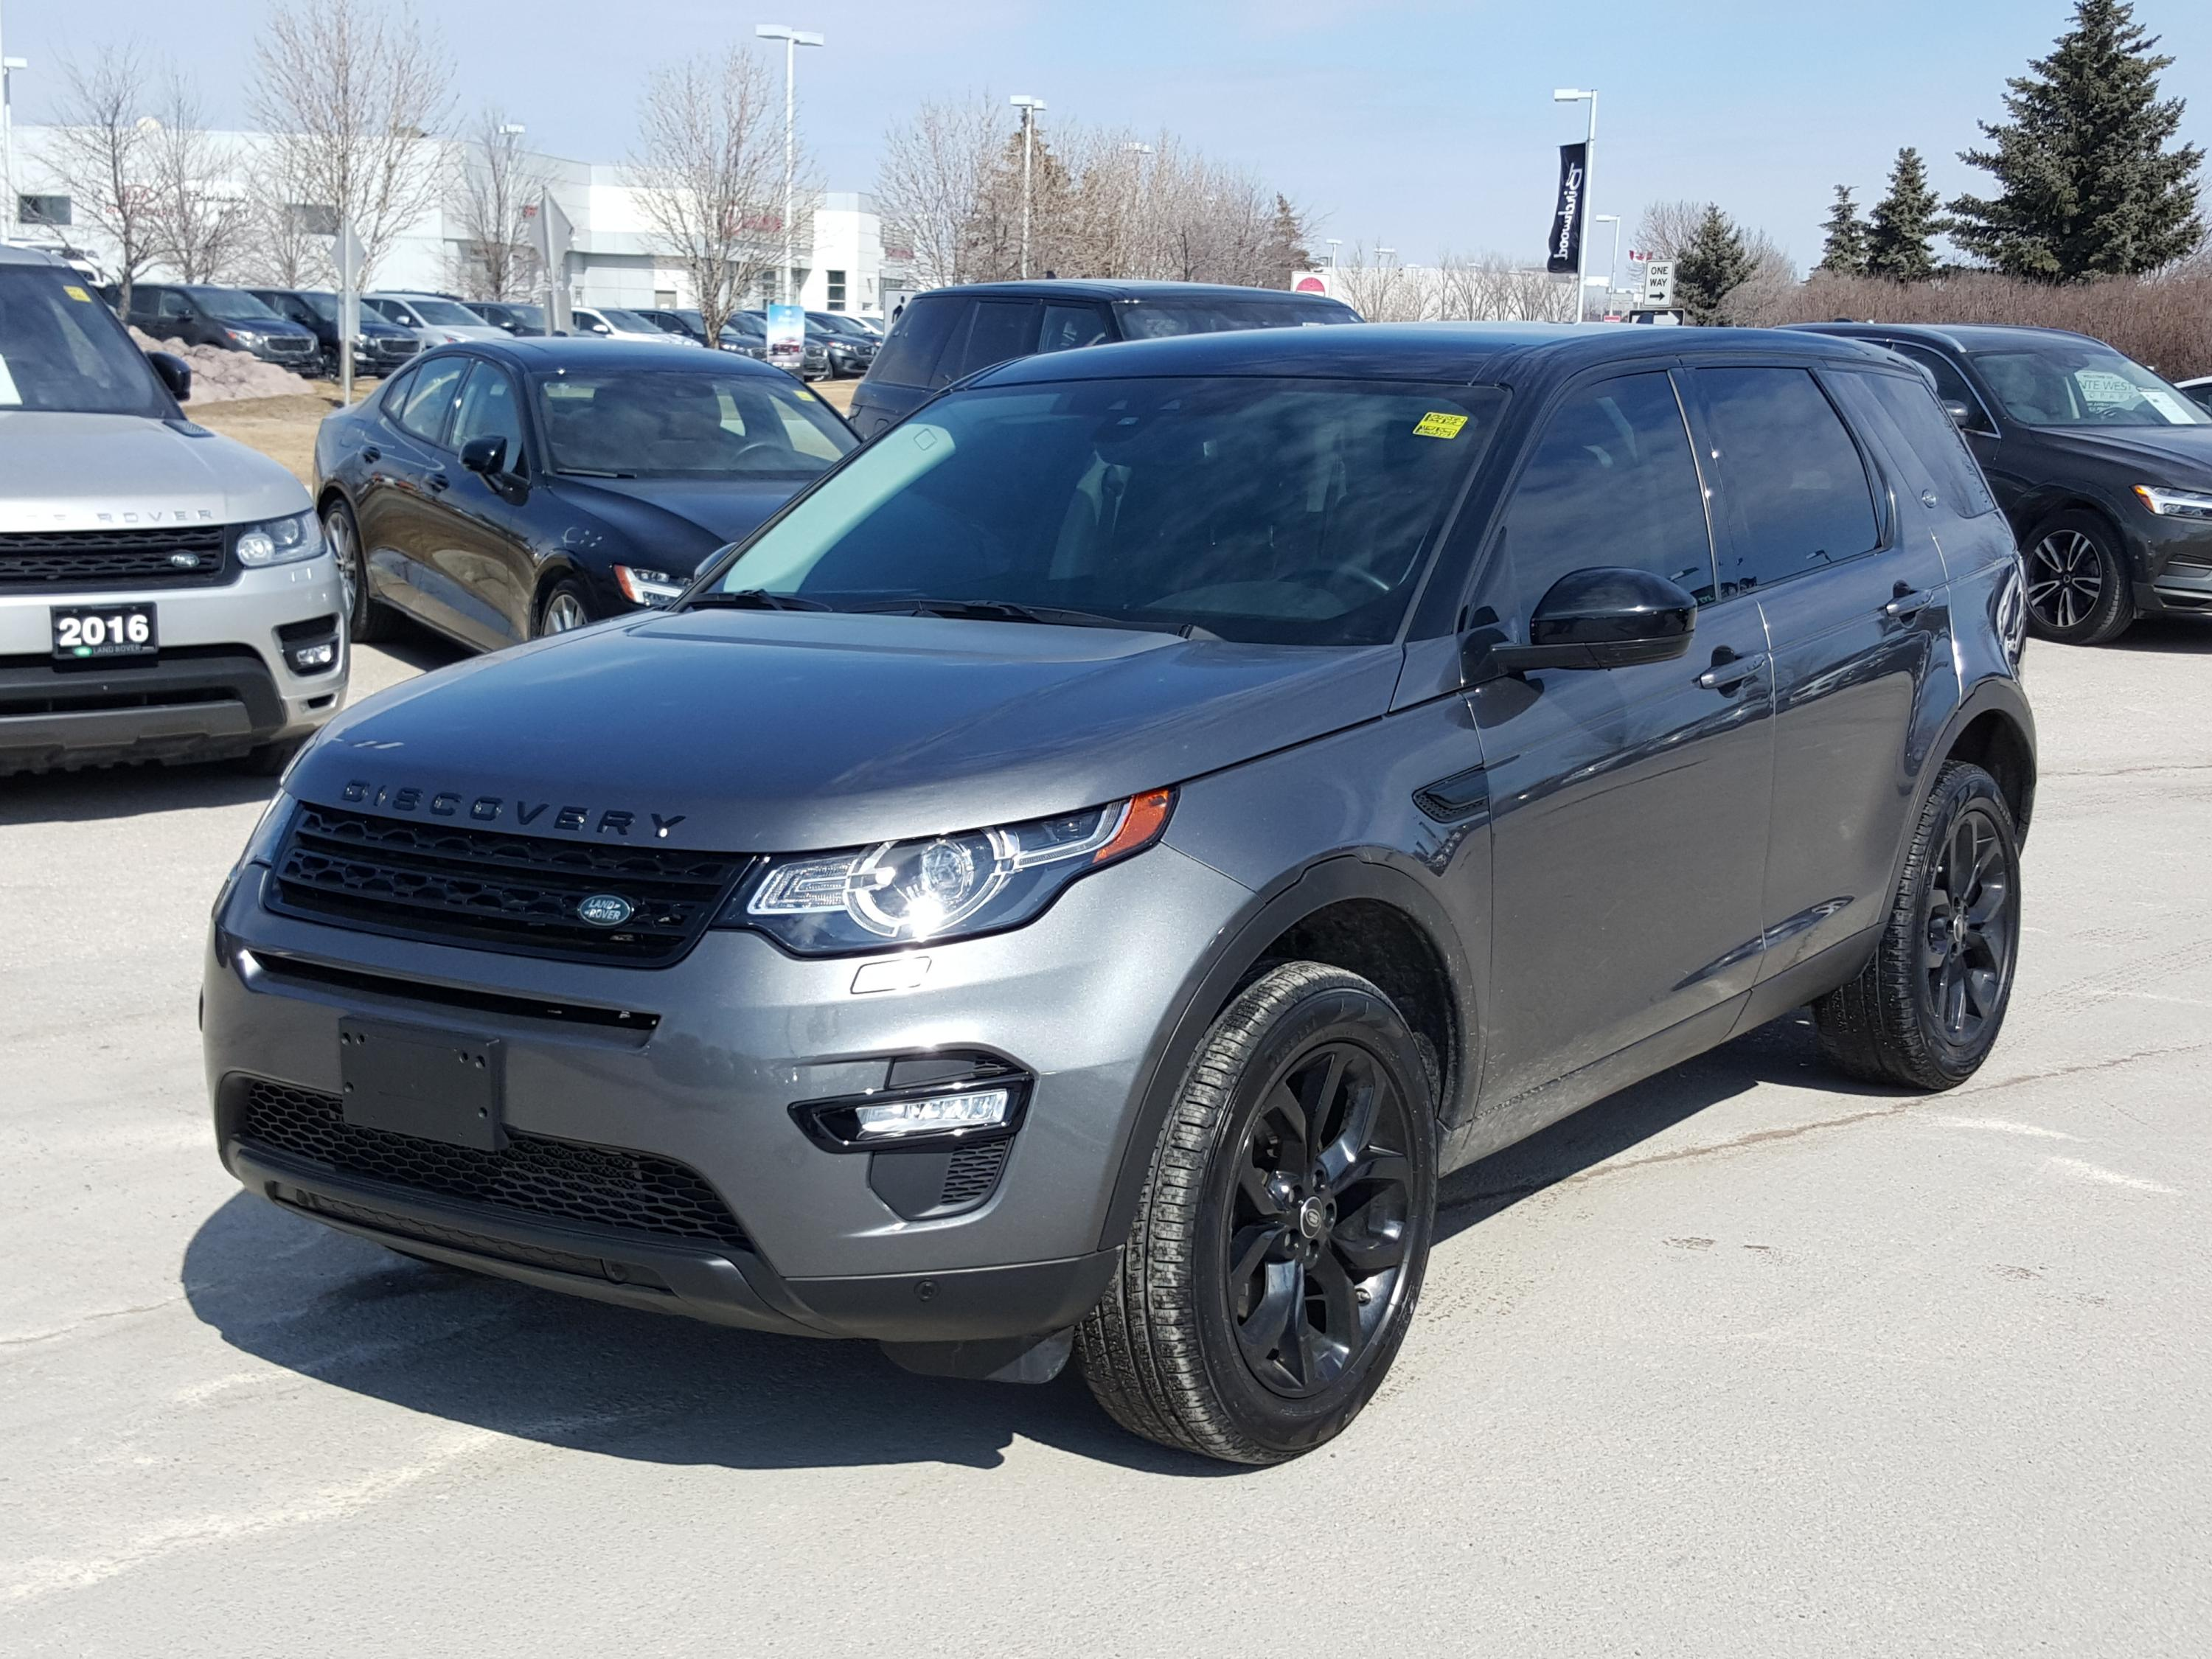 Pre-Owned 2016 Land Rover Discovery Sport HSE SOLD! Check the 2019!